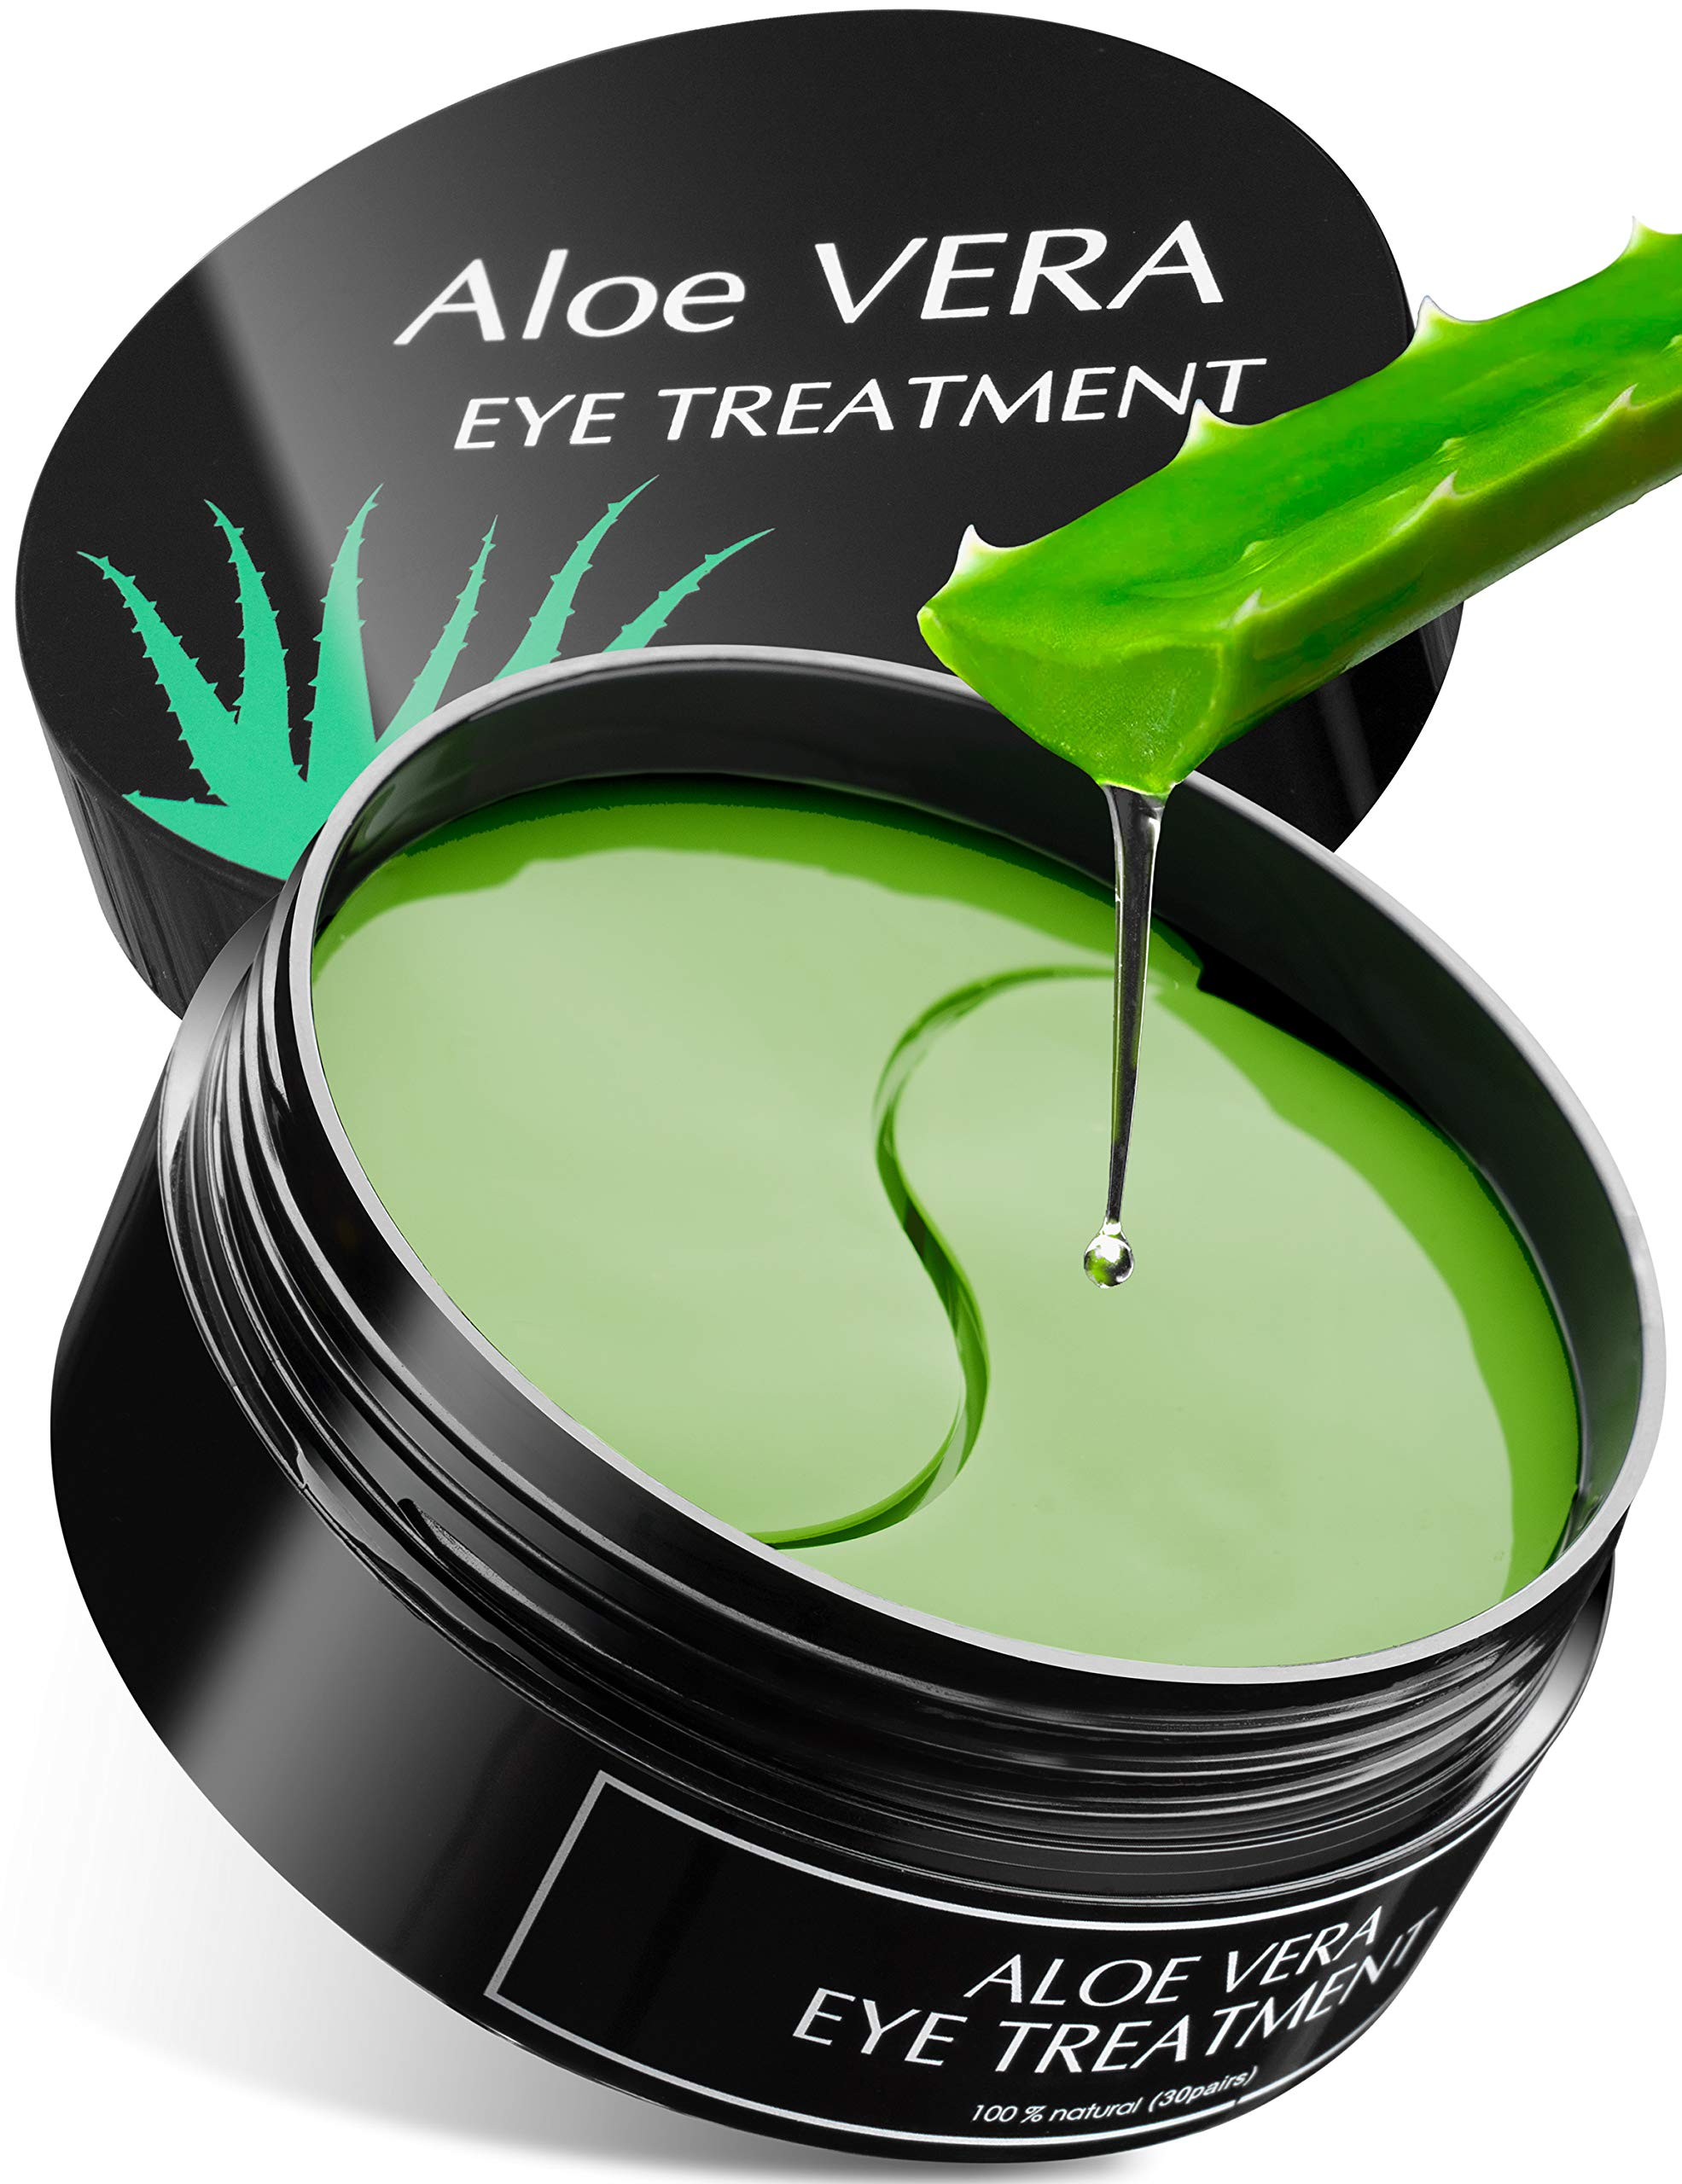 1bd2b84b421ef LUXURY Aloe Vera Eye Treatment Mask (30 Pairs) Reduces Wrinkles and  Puffiness